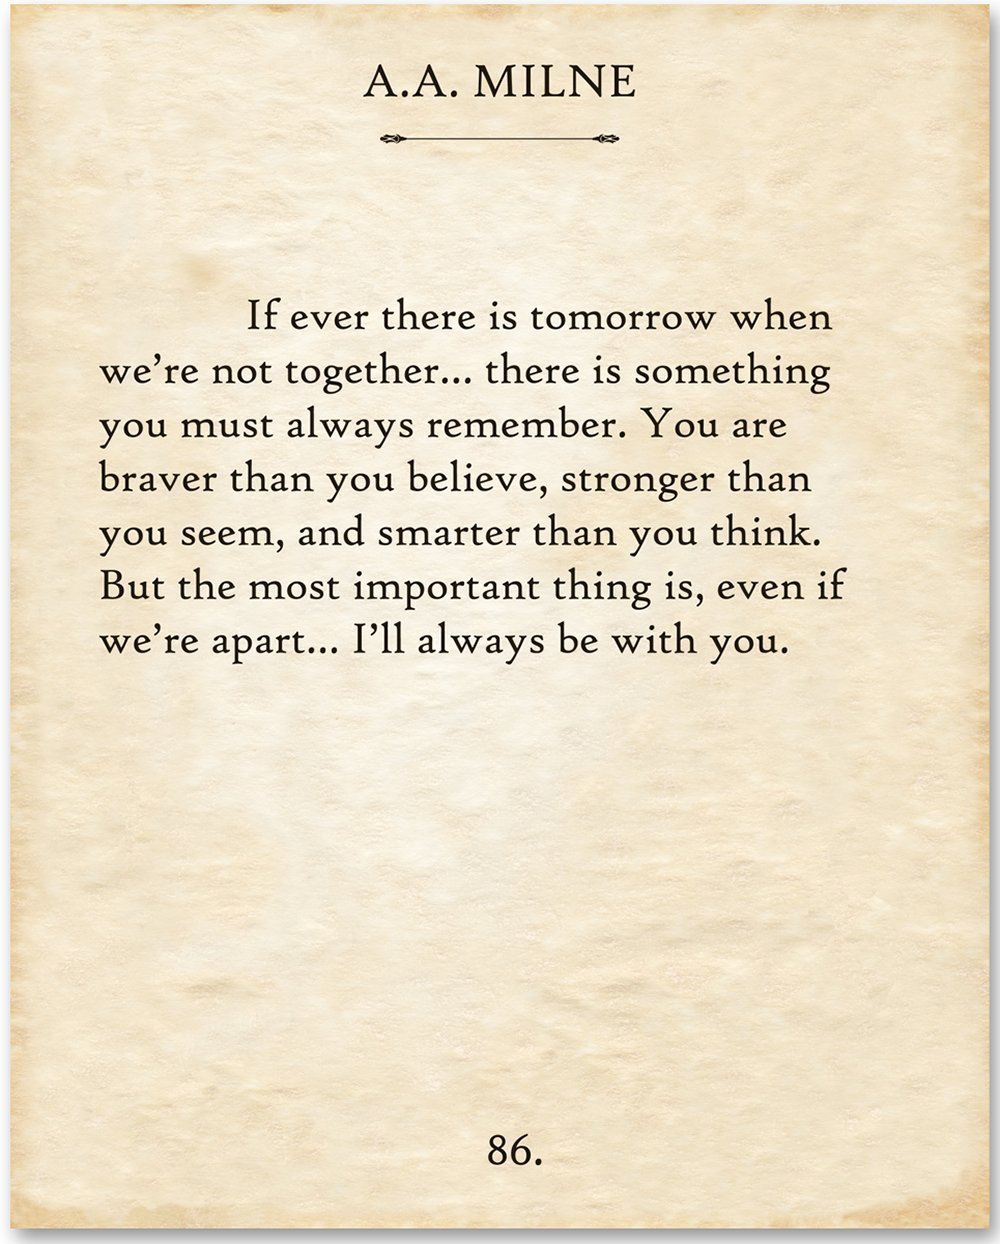 A.A. Milne - If There Ever Is Tomorrow. - 11x14 Unframed Typography Book Page Print - Great Gift for Book Lovers